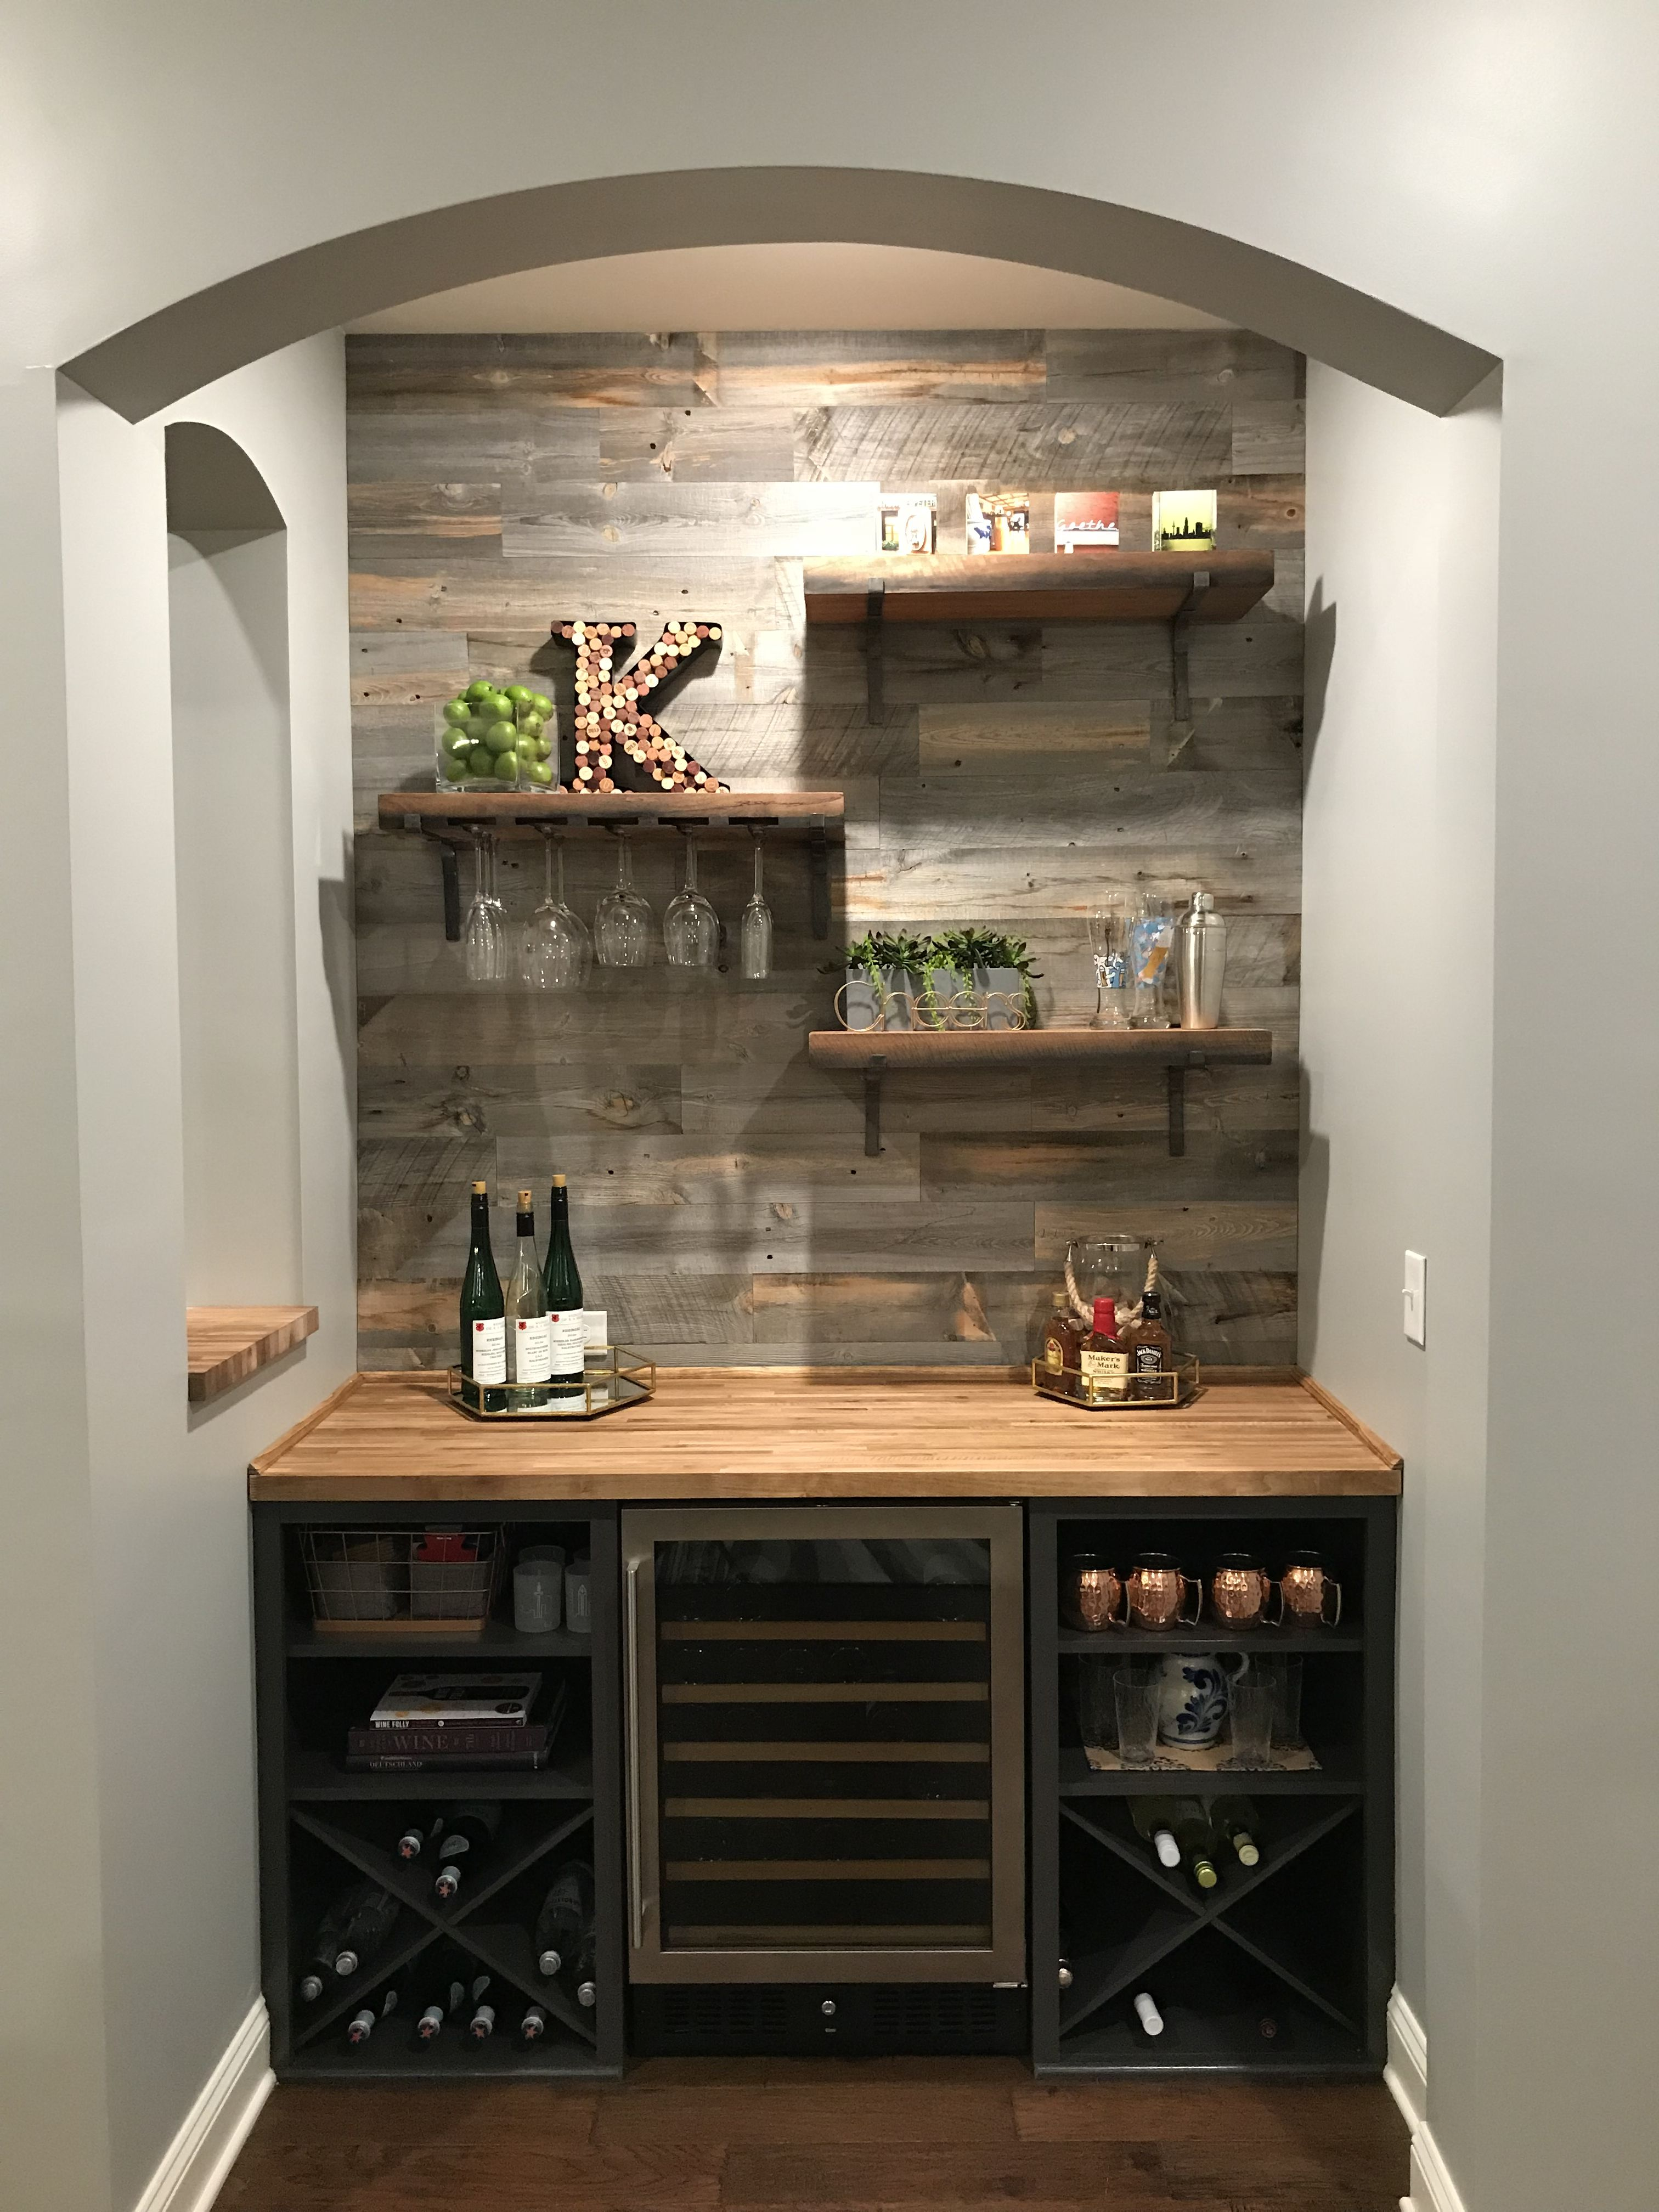 Pin By C M On Inspiring Ideas Bars For Home Home Bar Furniture